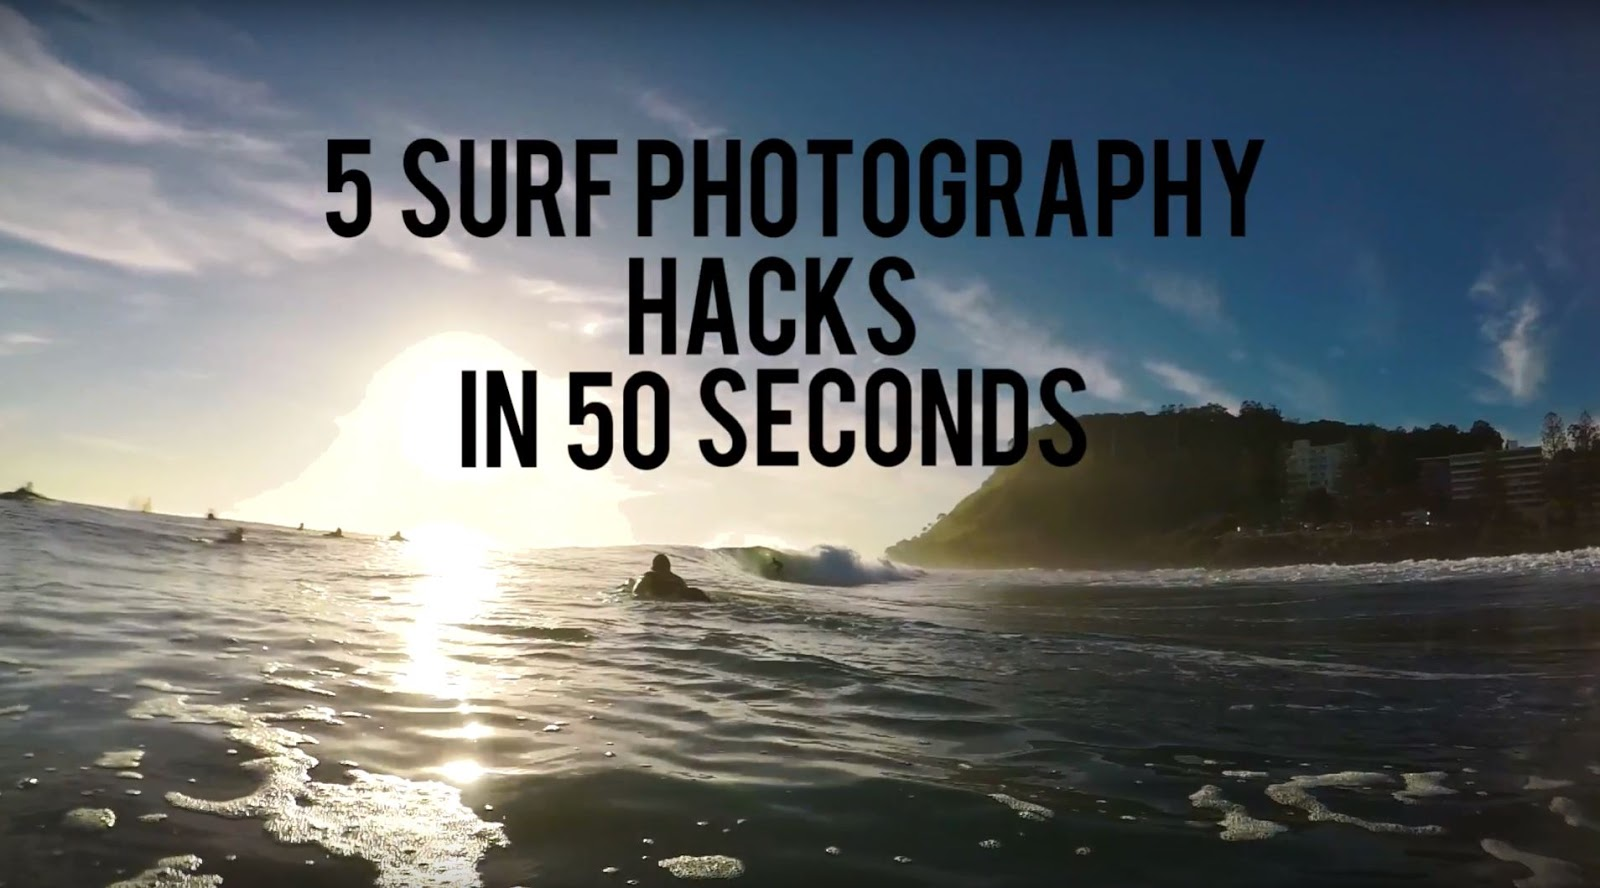 5 Surf Photography HACKS in 50 SECONDS, that you'll actually use!